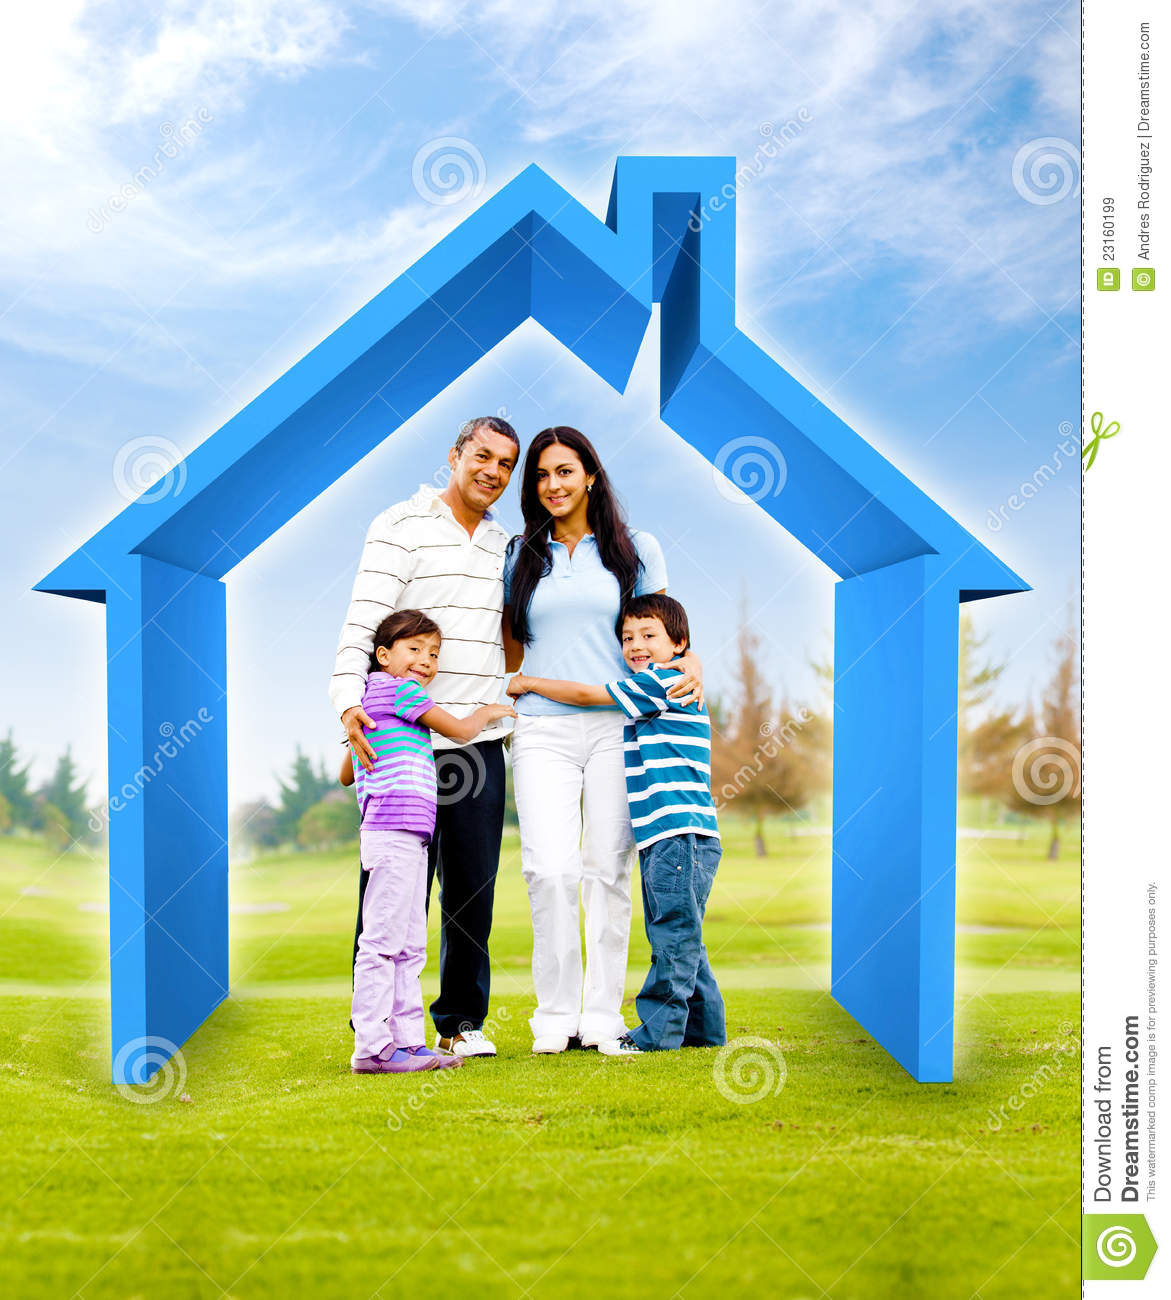 family buying a house stock illustration image of girl 23160199. Black Bedroom Furniture Sets. Home Design Ideas